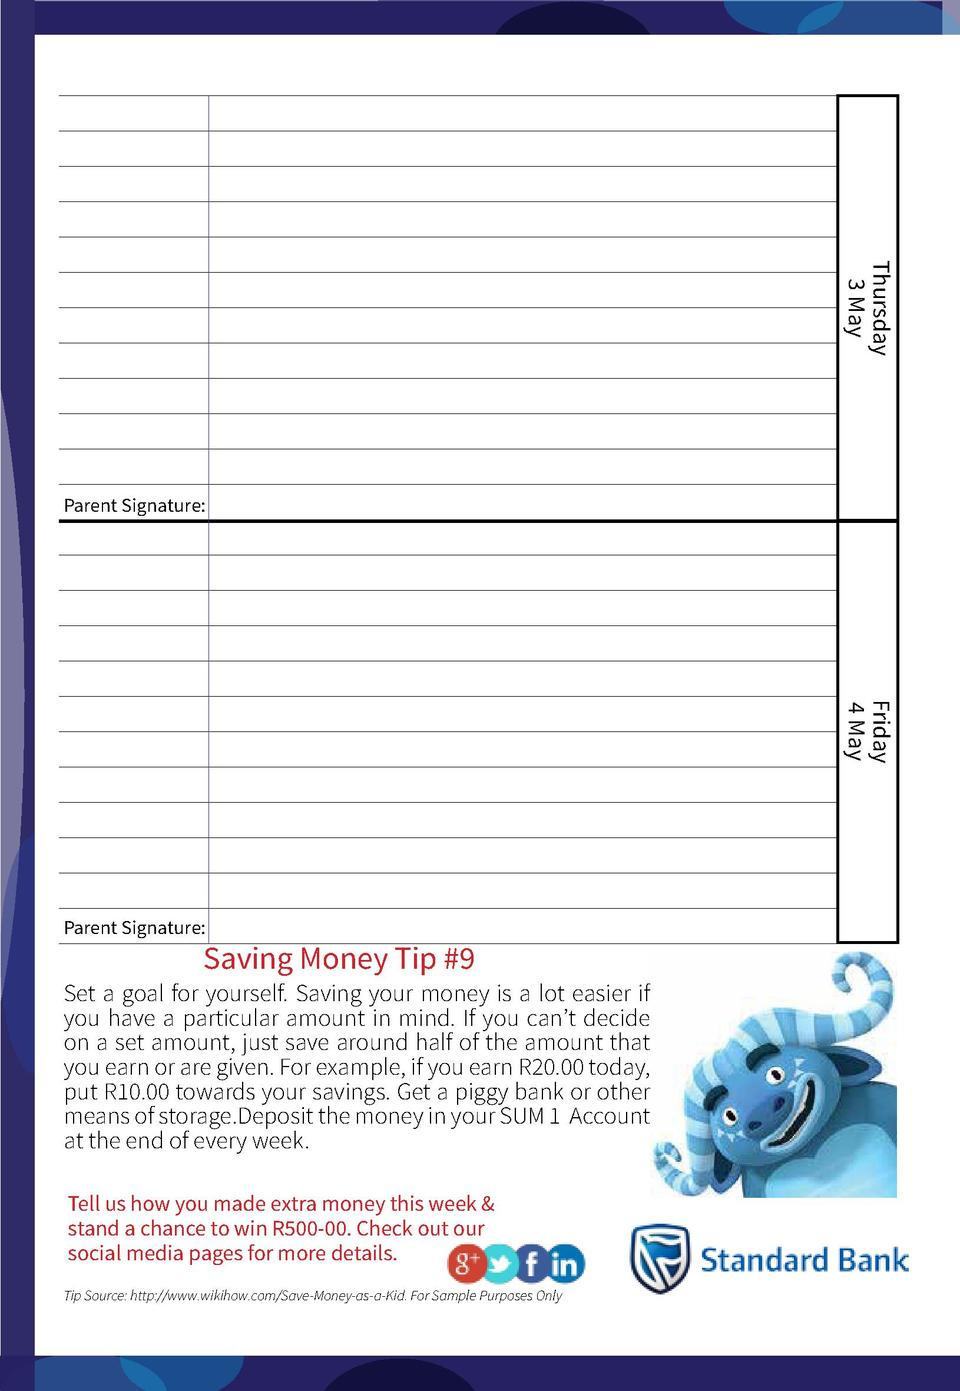 Thursday 3 May  Parent Signature   Friday 4 May  Parent Signature   Saving Money Tip  9  Set a goal for yourself. Saving y...